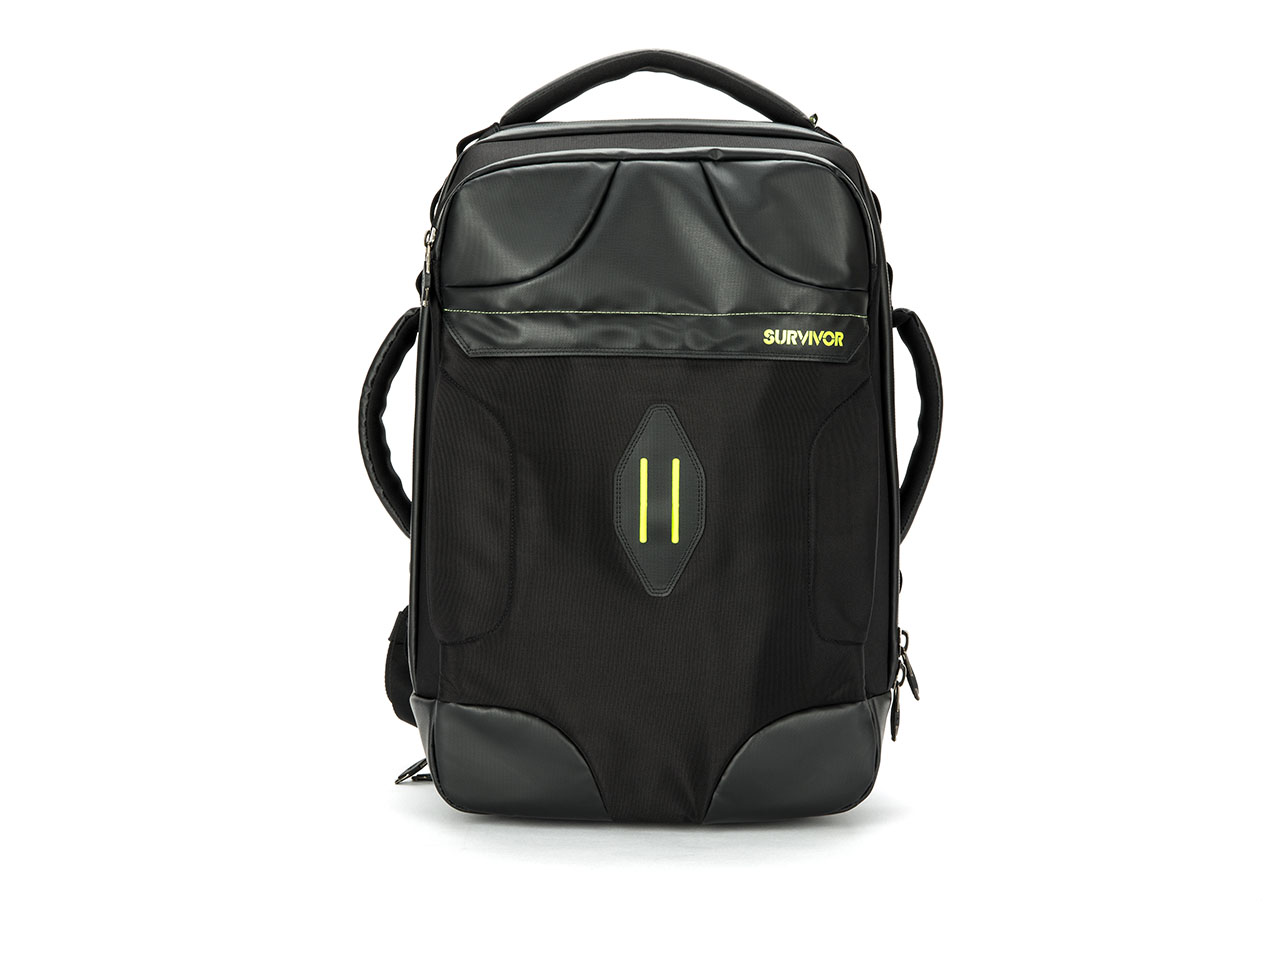 Survivor BackPack - Rugged